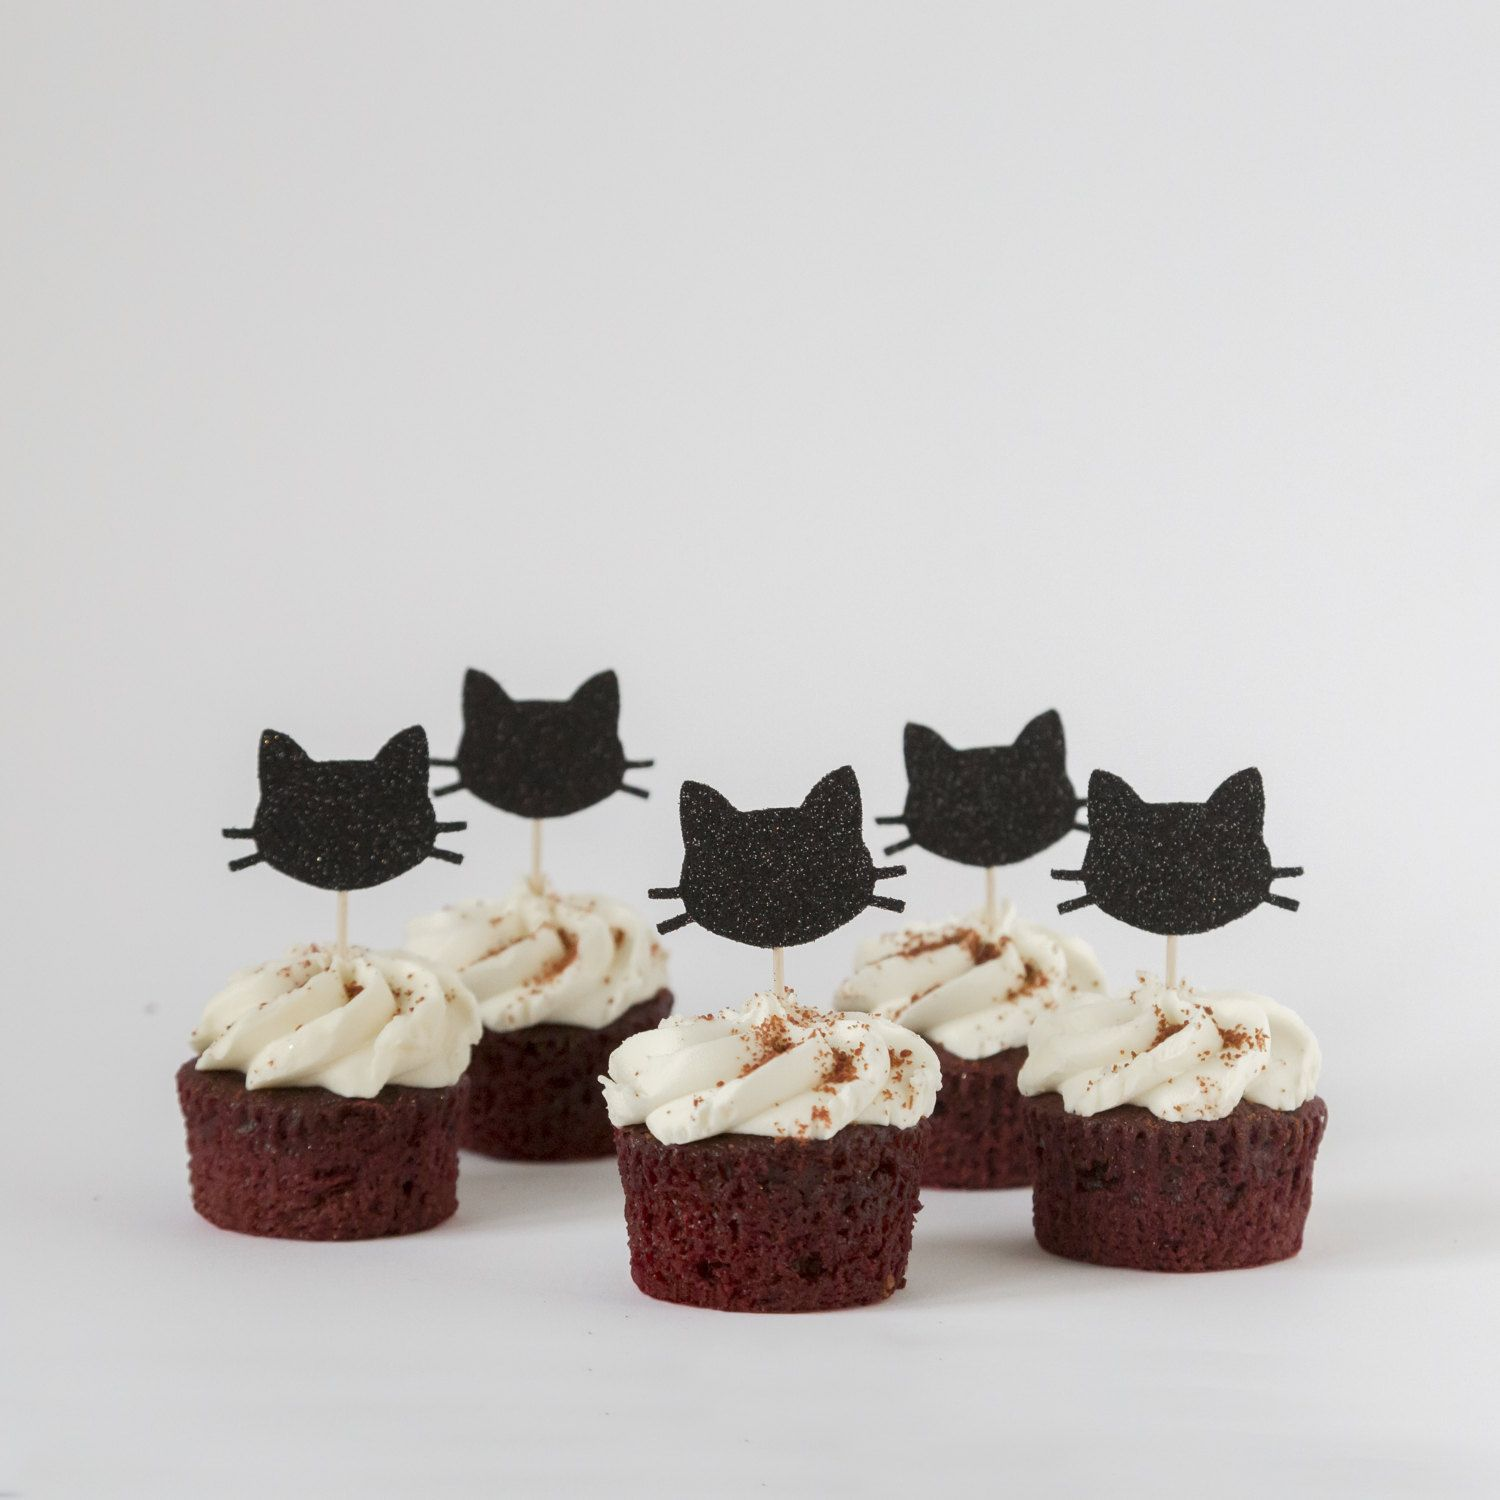 Black Cat Decorations Cat Cupcake Toppers Black Cat Party Decorations Silver